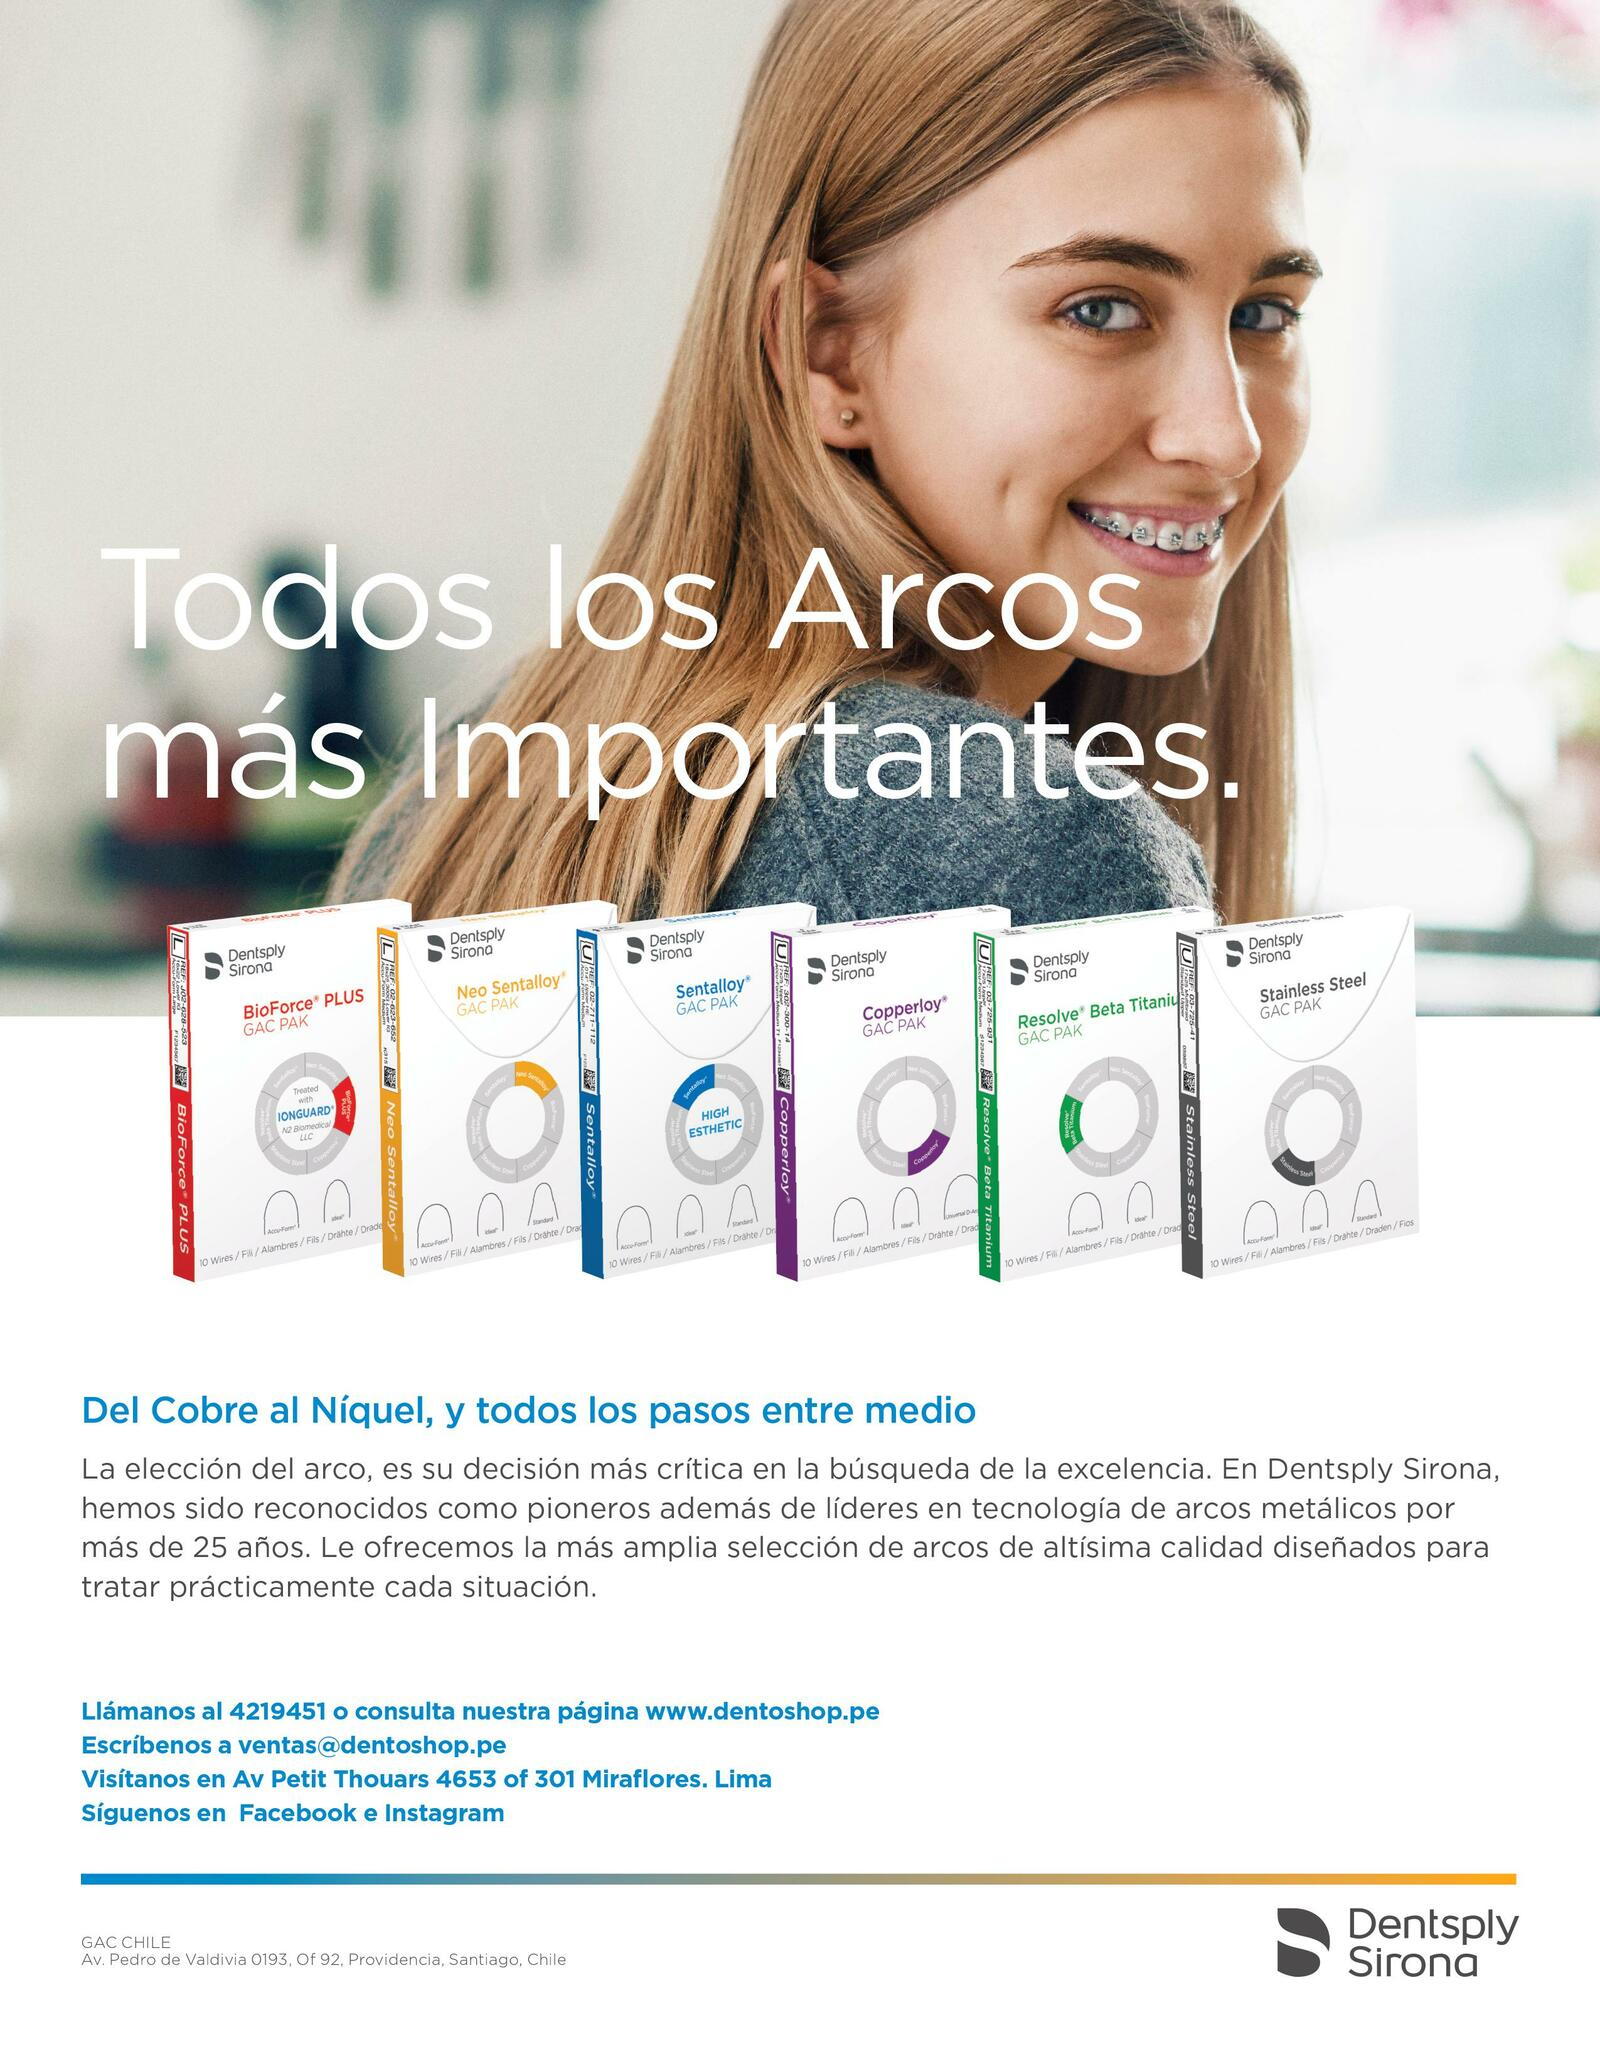 Arcos High Estetic